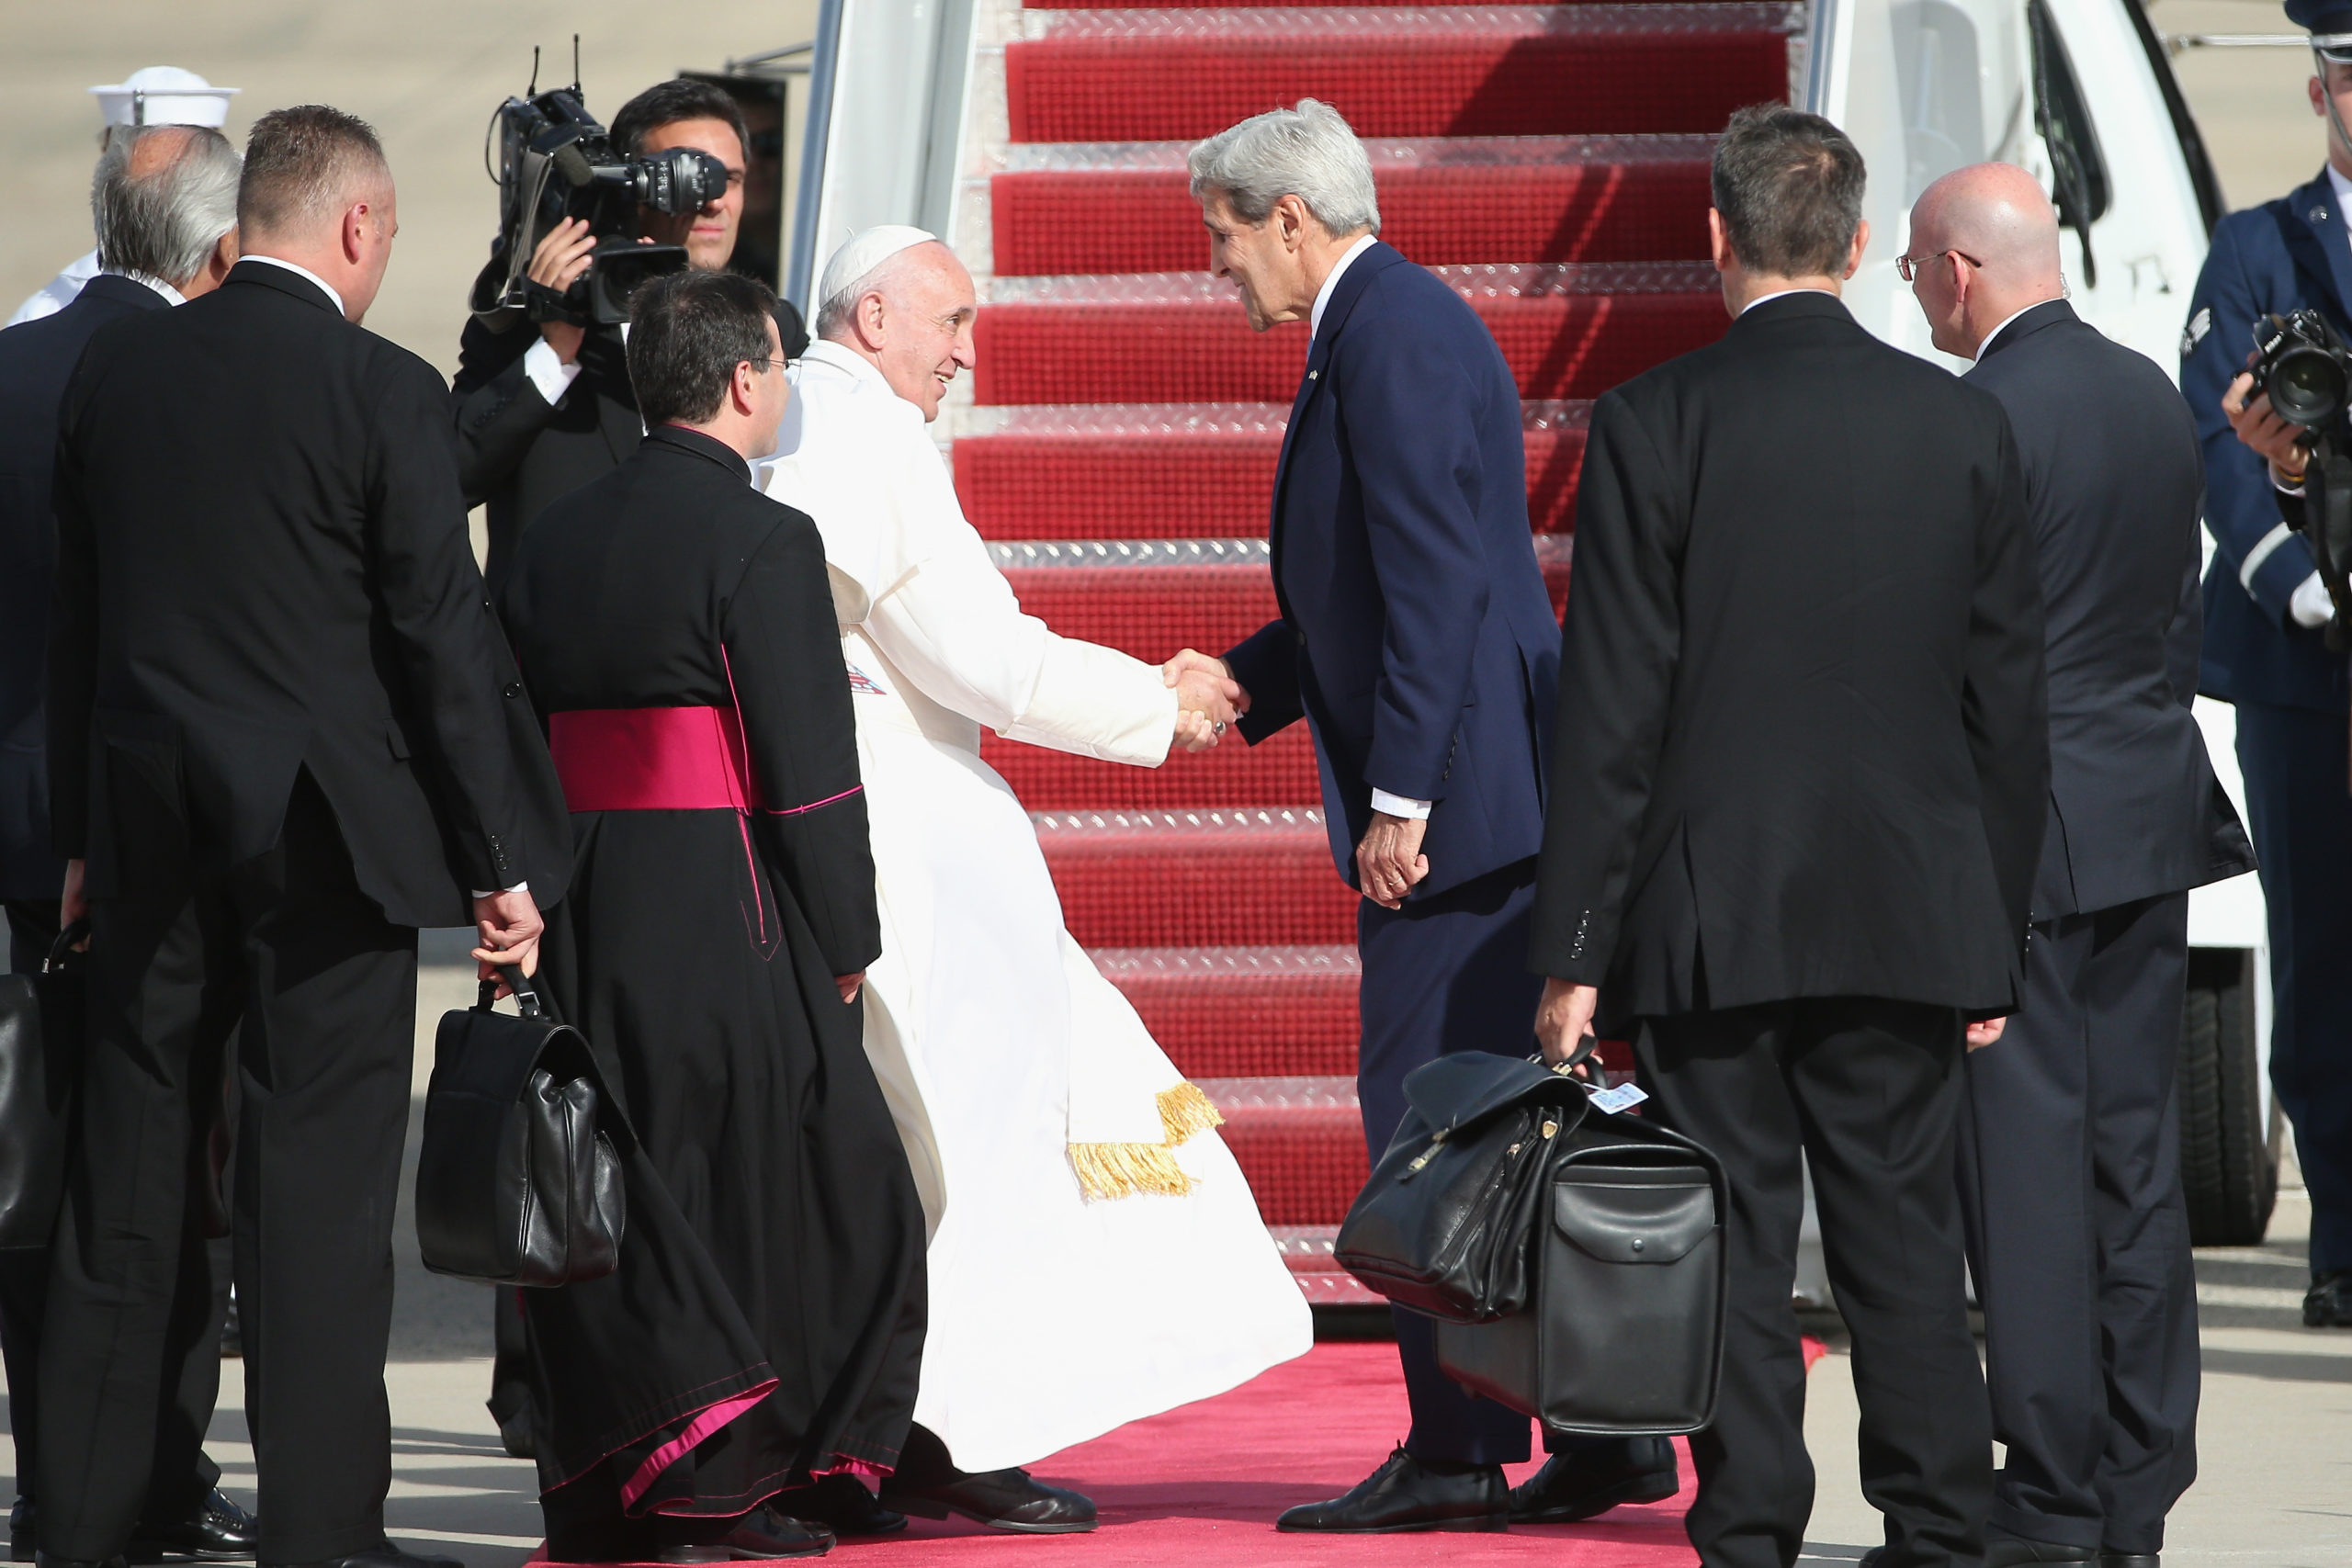 JOINT BASE ANDREWS, MD - SEPTEMBER 24: Pope Francis bids farewell to Secretary of State John Kerry as he departs from Washington, DC en route to New York City on September 24, 2015 in Joint Base Andrews, Maryland.The Pope is on a six-day trip to the U.S., with stops in Washington, New York City and Philadelphia. (Photo by Patrick Smith/Getty Images)